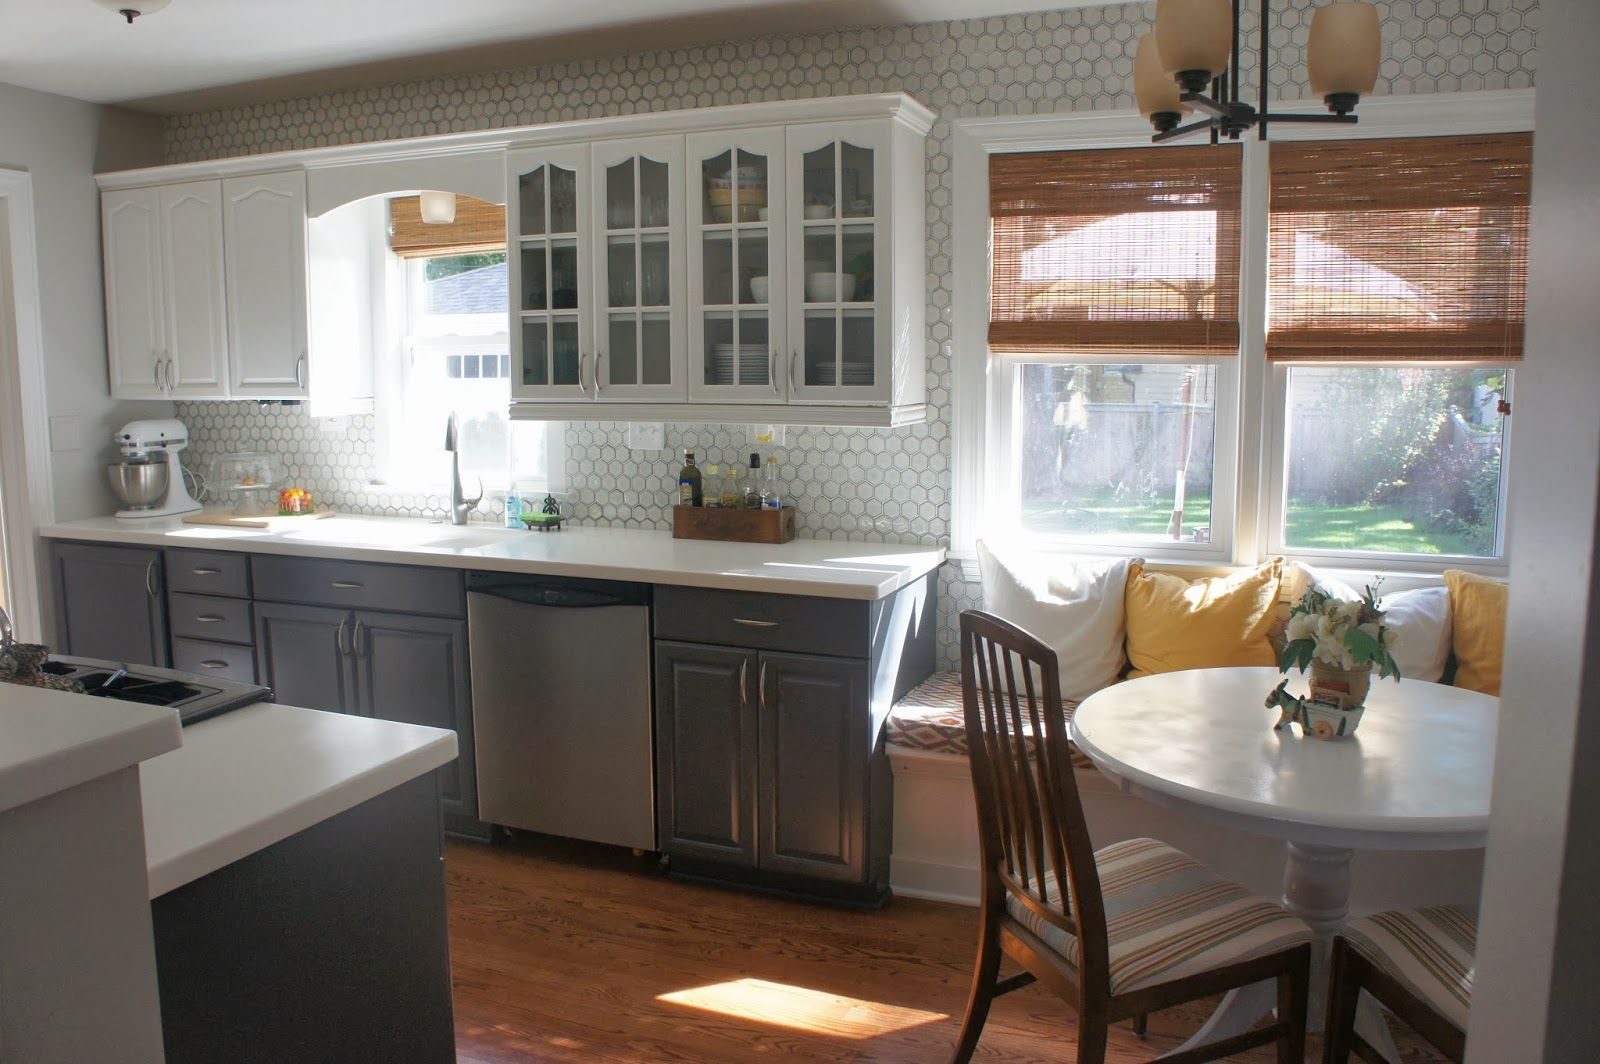 White Kitchen Cabinet Designs Gray And White Kitchen Makeover With Hexagon Tile Backsplash